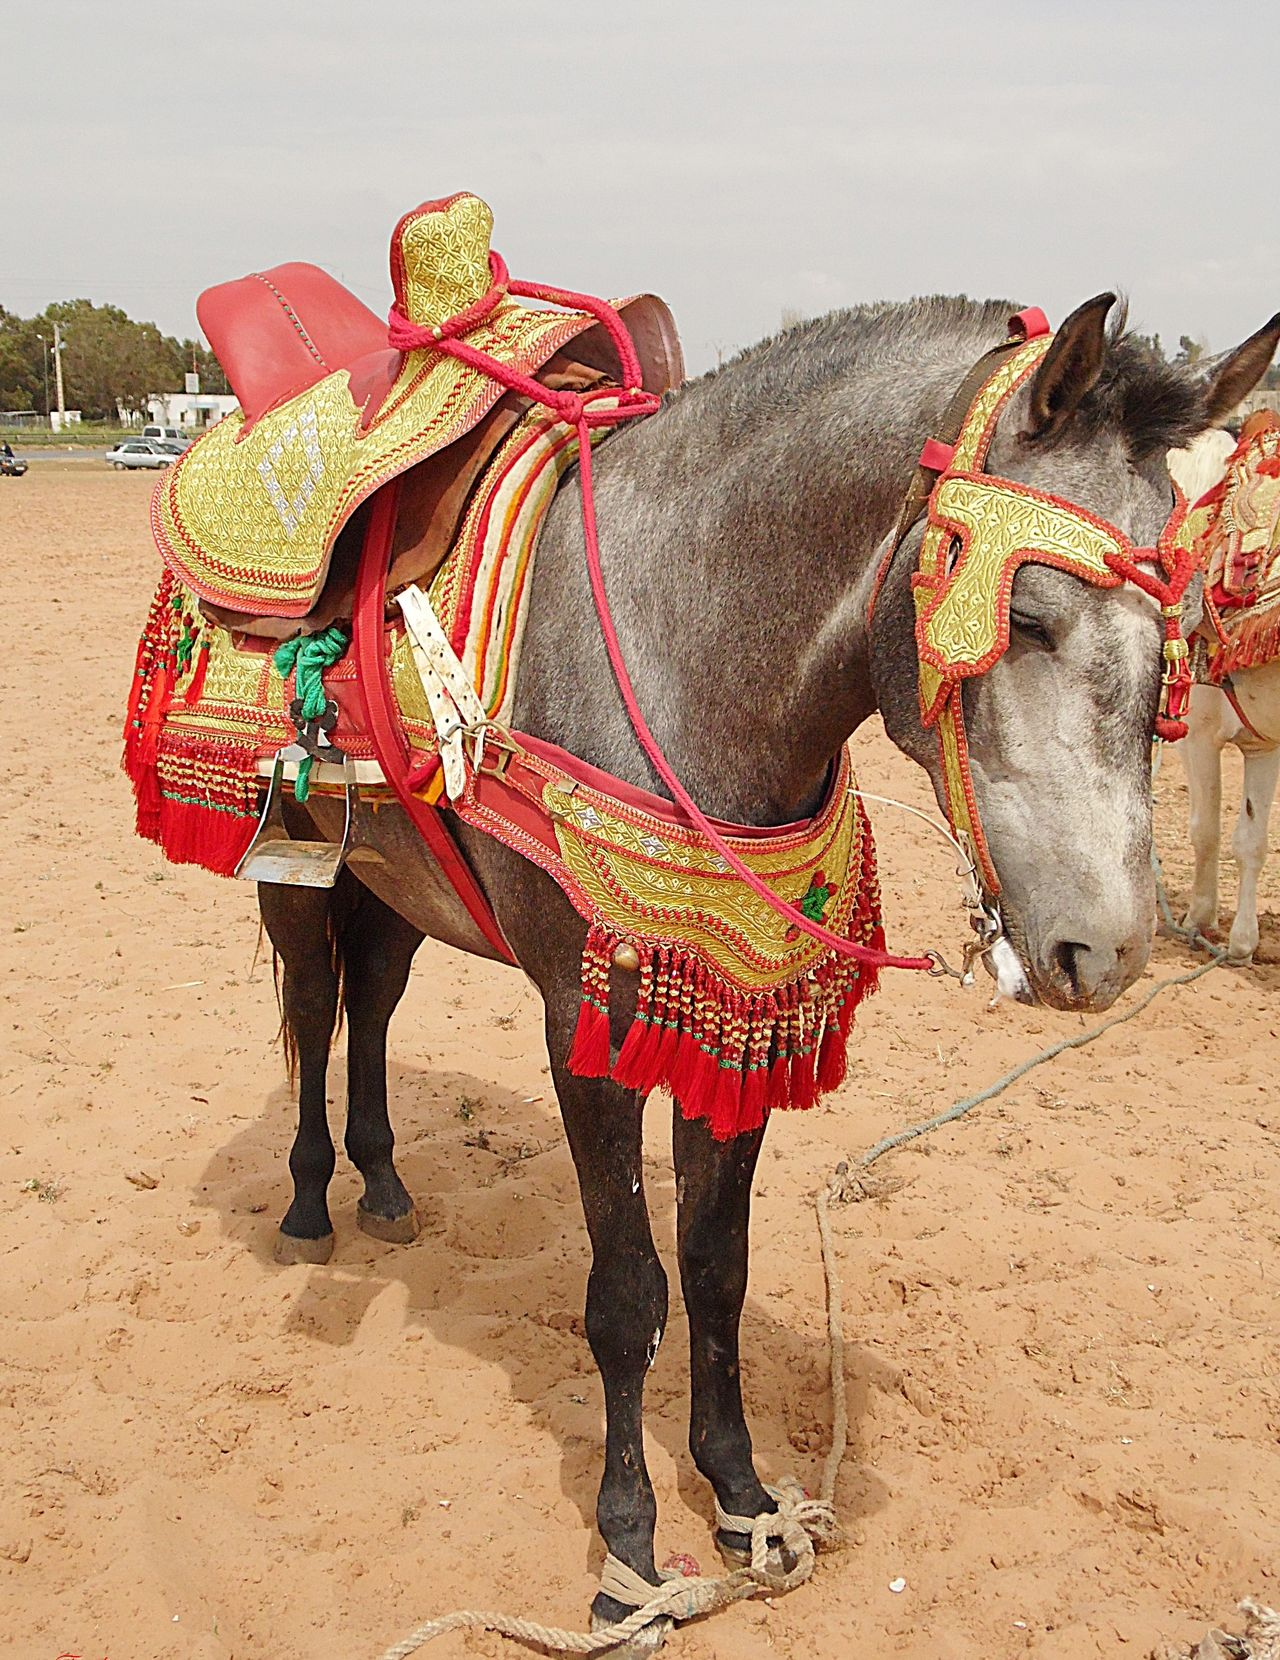 Animal Themes Artisanale Artisanat Broderie Cheval Day Domestic Animals Elephant Fantasia Fantasie Full Length Low Section Mammal No People One Animal Outdoors Standing Working Animal